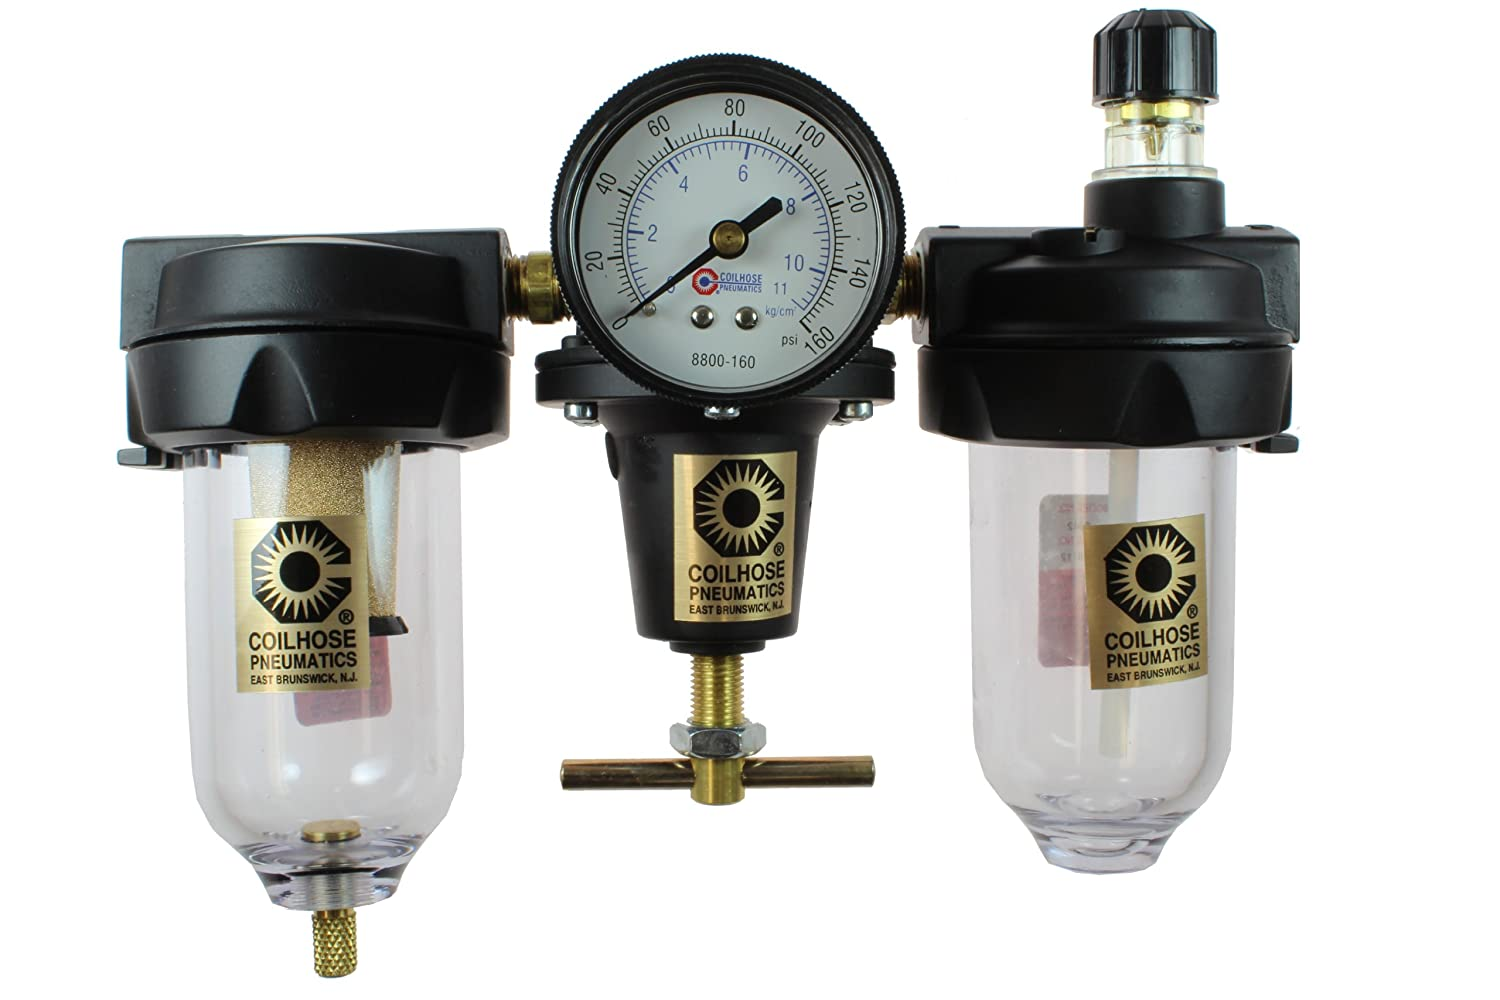 Coilhose Pneumatics 8882AAG Heavy Duty Series Filter, Regulator, and Lubricator Trio Assembly, 1/4-Inch Pipe Size by Coilhose Pneumatics  B003D7L0MY